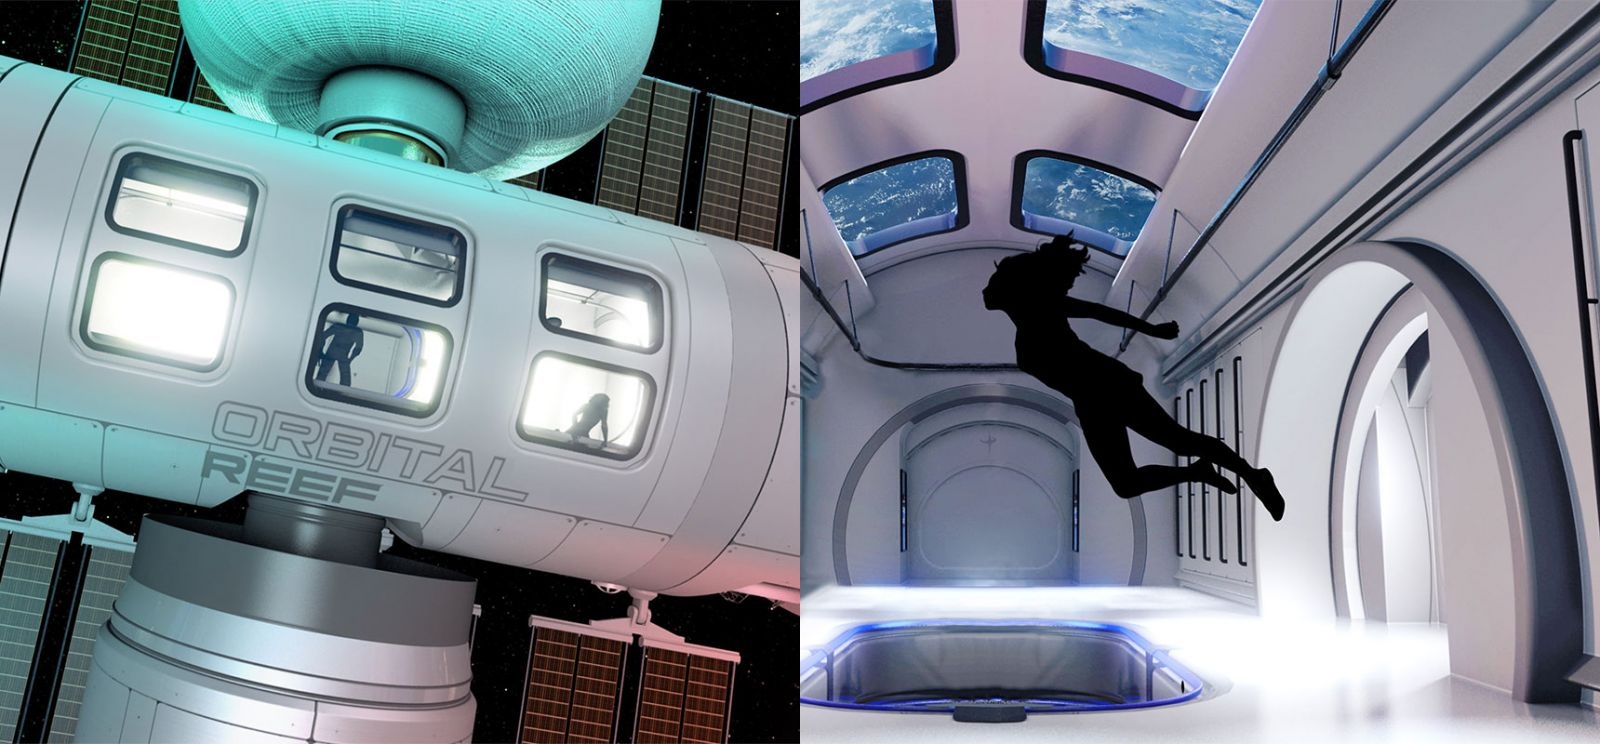 A rendering of the core module for the Orbital Reef space station. Credit: Blue Origin